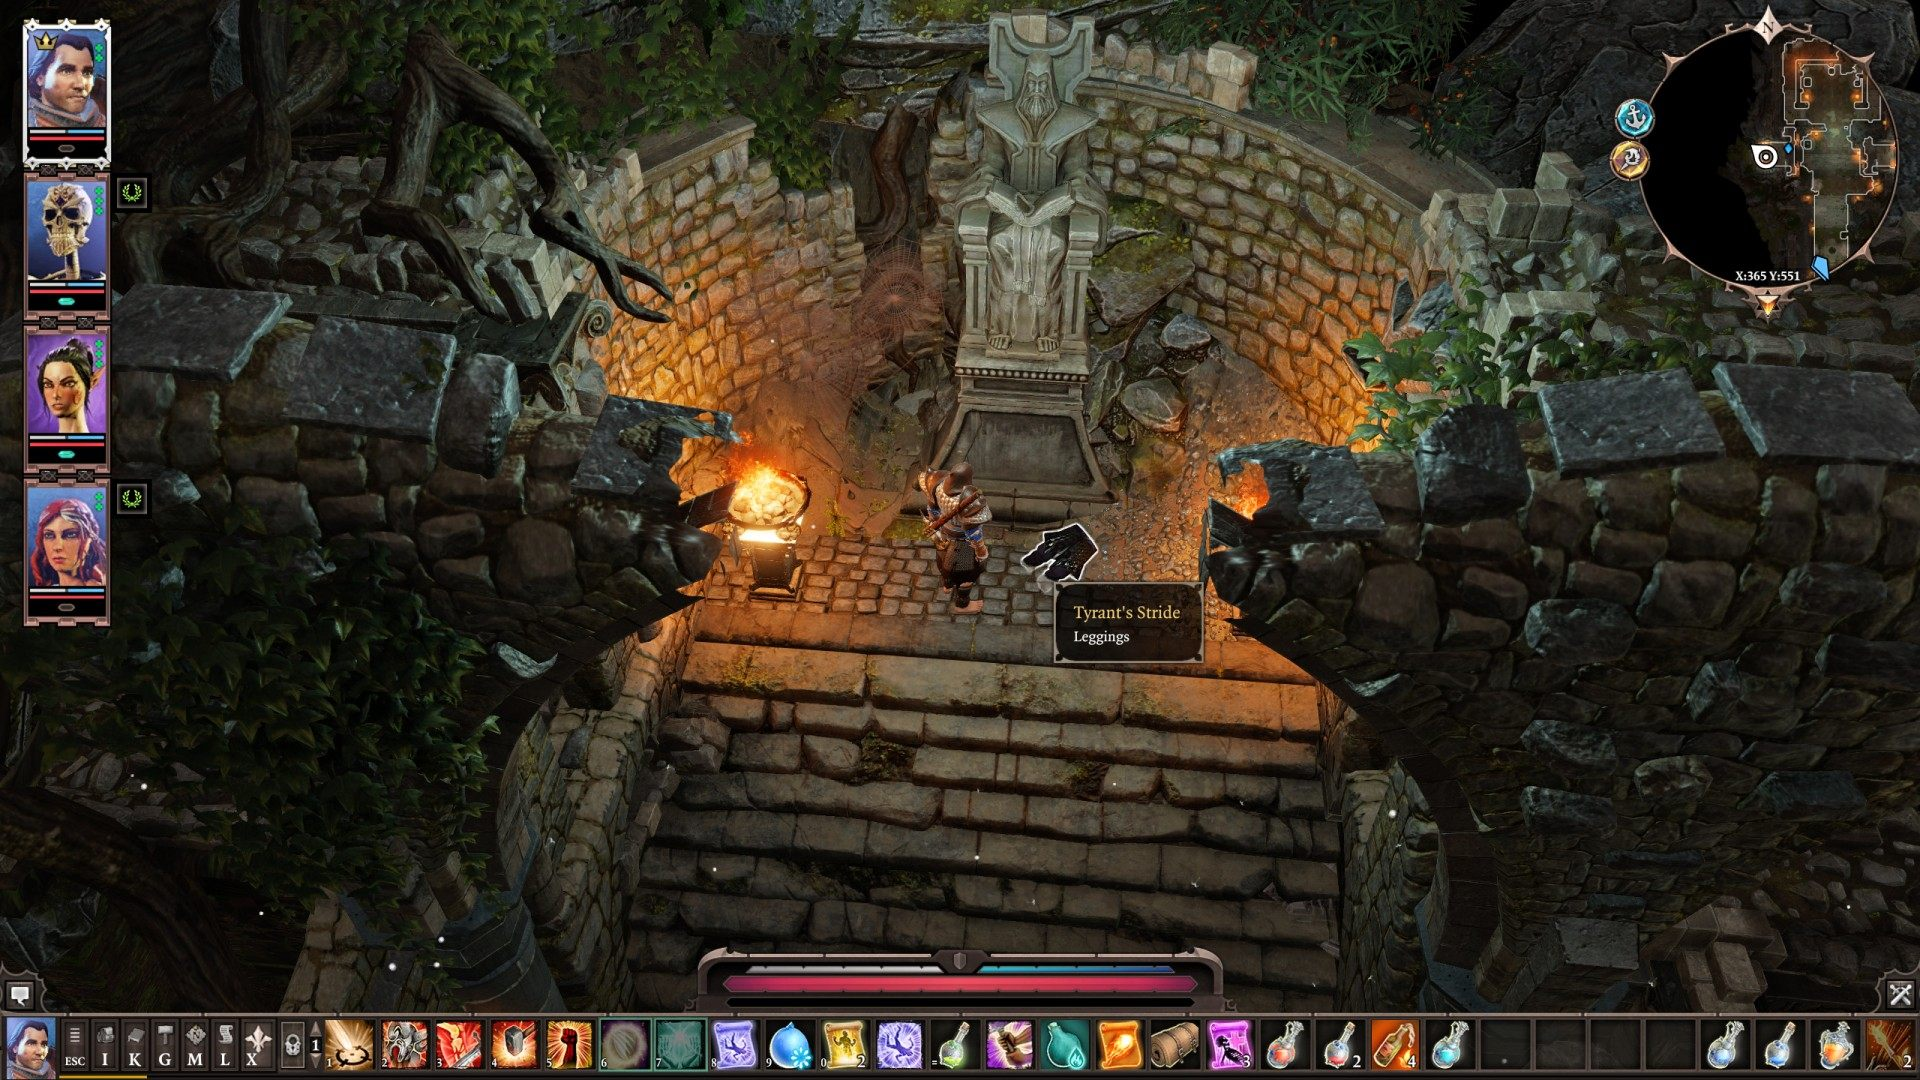 Artefacts Of The Tyrant Divinity Original Sin 2 Quest You can kick off this quest by first completing the vault of braccus rex quest to collect one of the pieces. the tyrant divinity original sin 2 quest